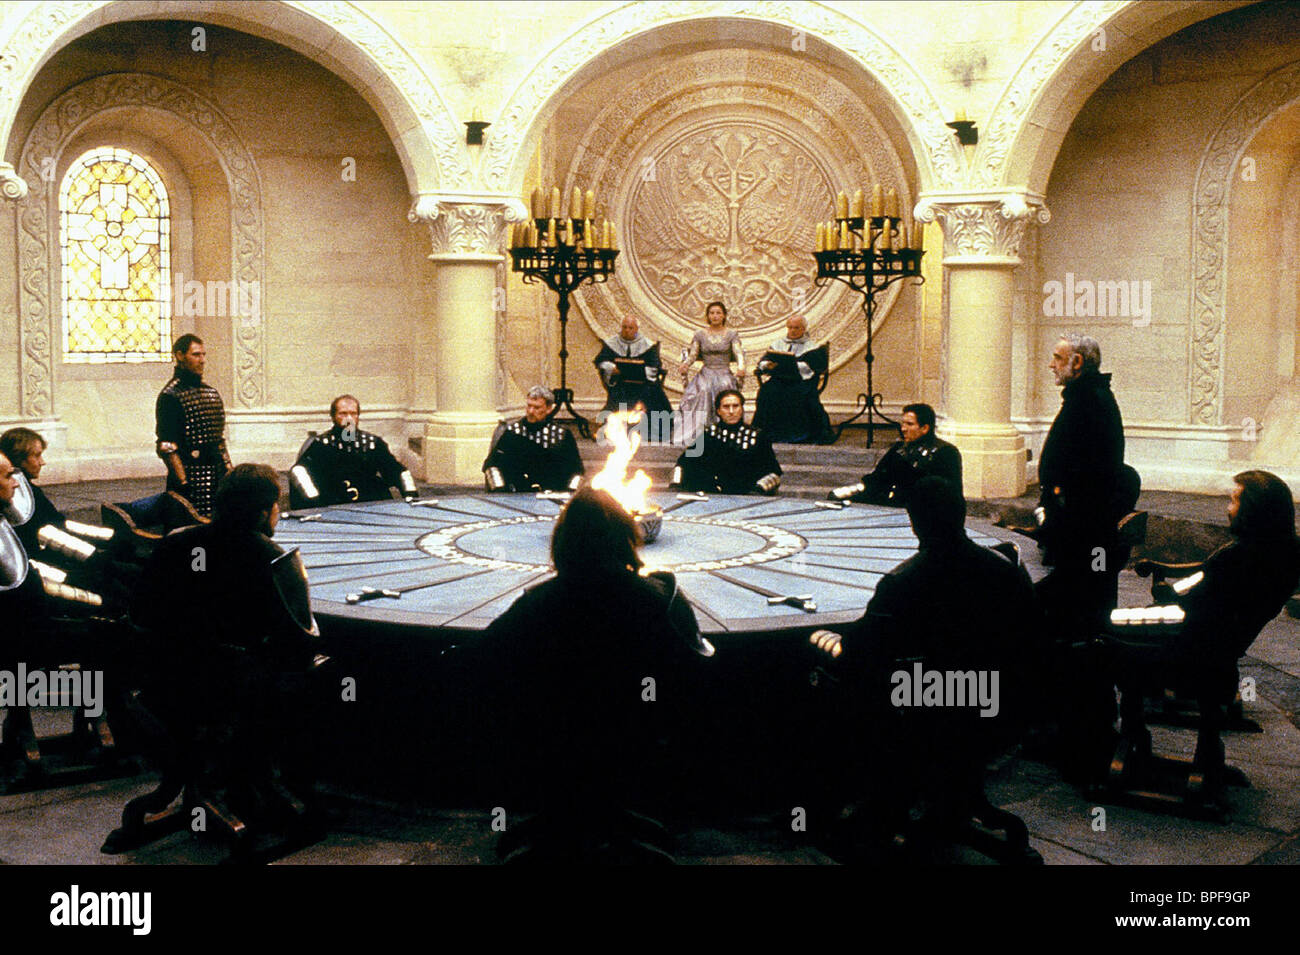 Ben Cross Sean Connery First Knight 1995 Stock Photo Alamy